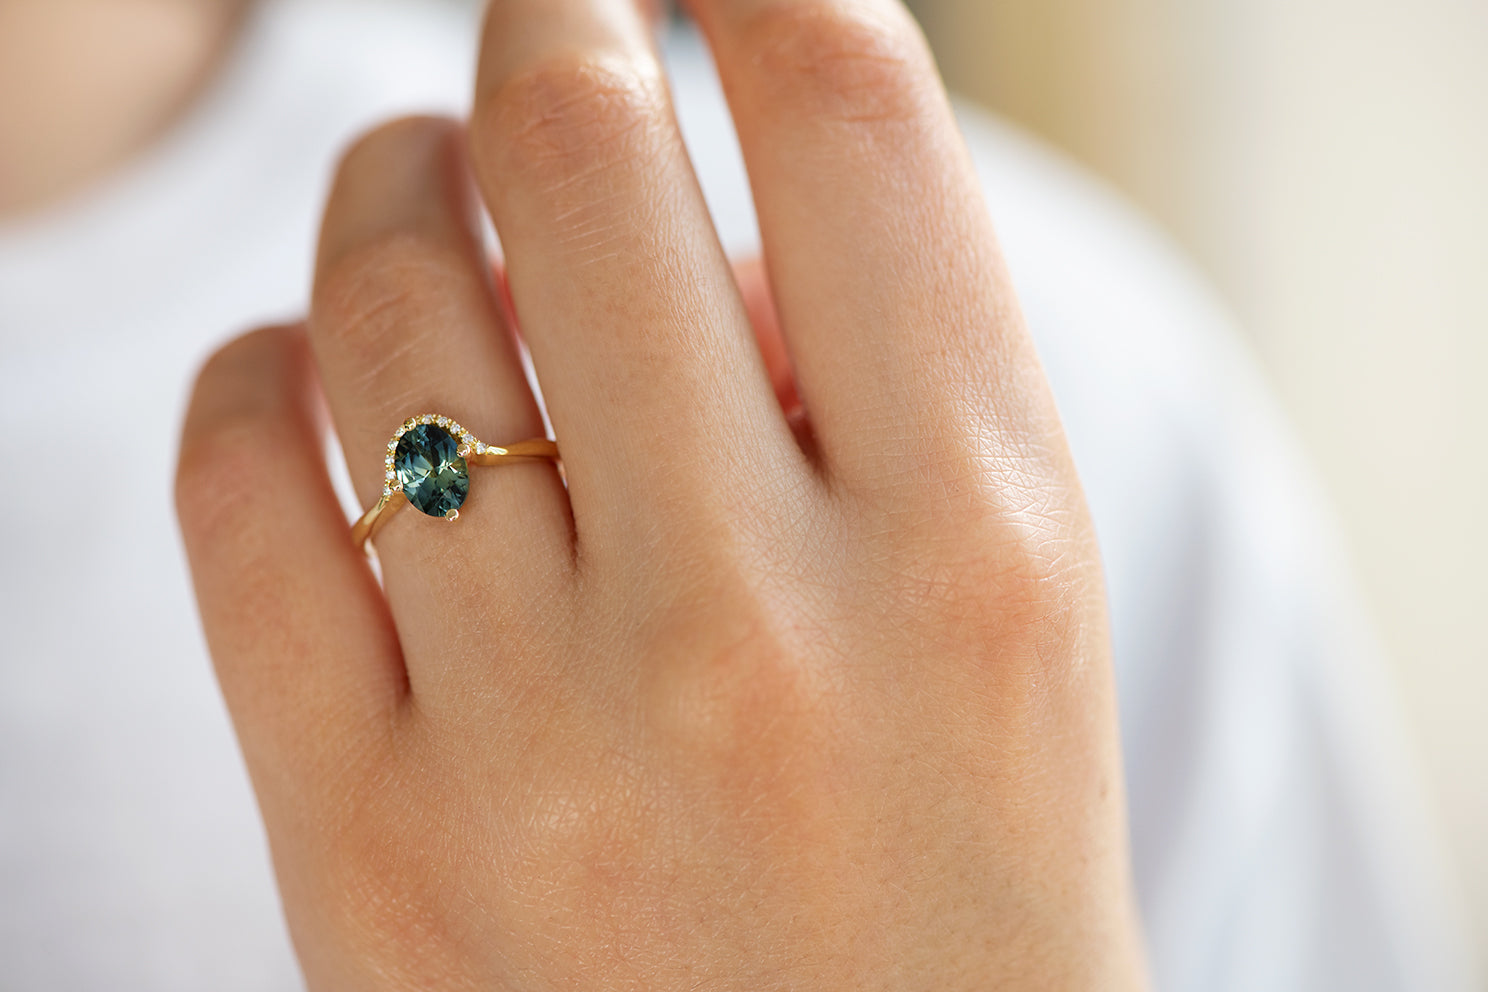 Teal Sapphire Engagement Ring - OOAK on Hand Up Close Front Shot